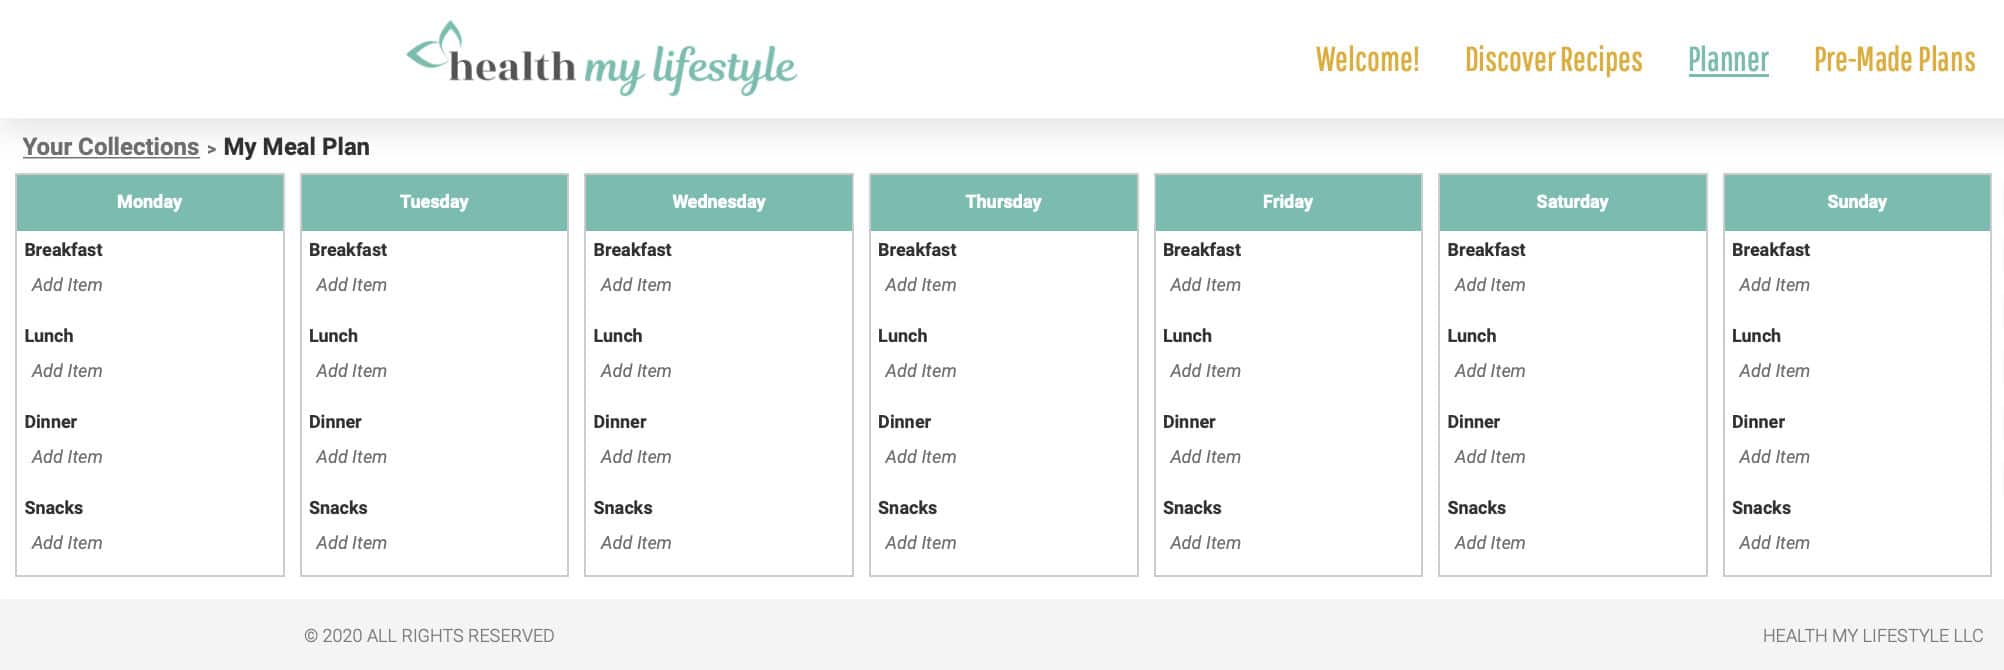 example meal plan schedule showing Monday through Sunday with options for breakfast, lunch, dinner, and snacks